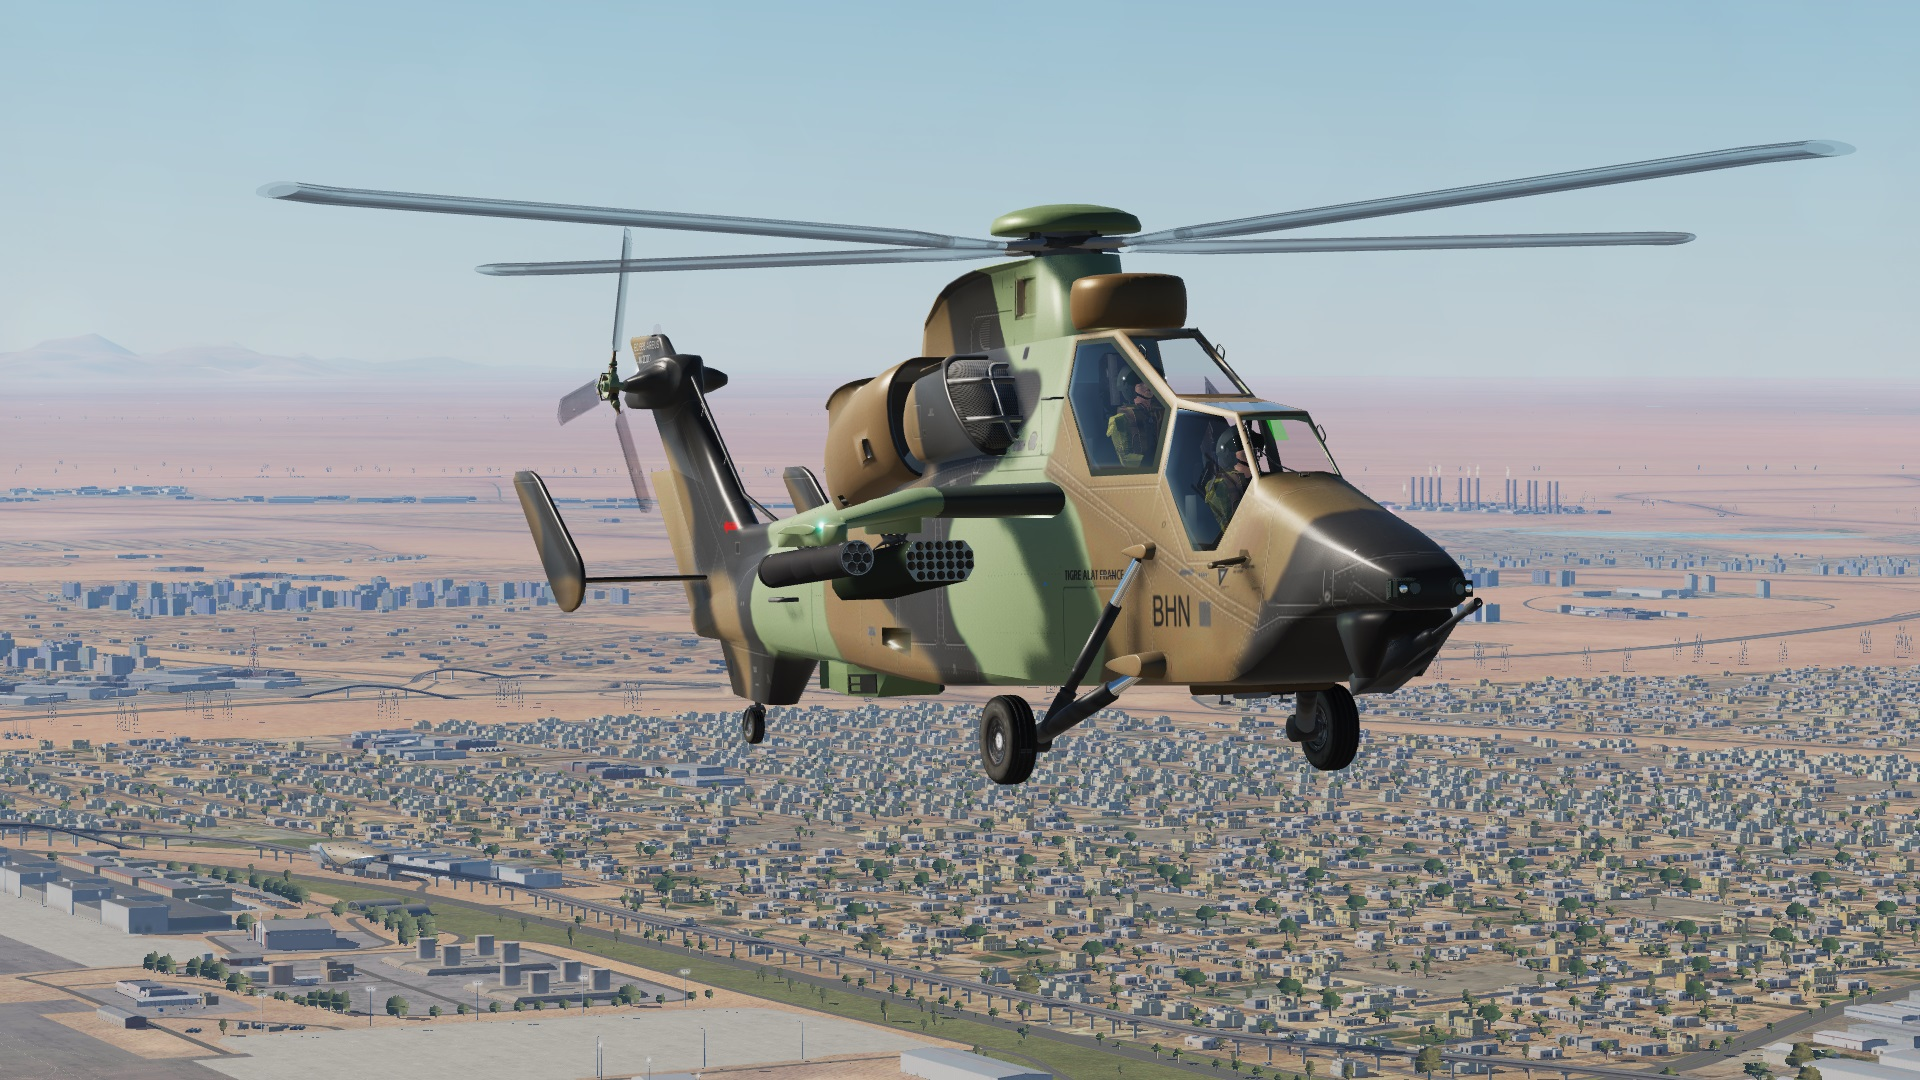 MOD EUROCOPTER EC665 TIGER type Ka-50 for all 2.5.6.52437 by the Cuesta Brothers